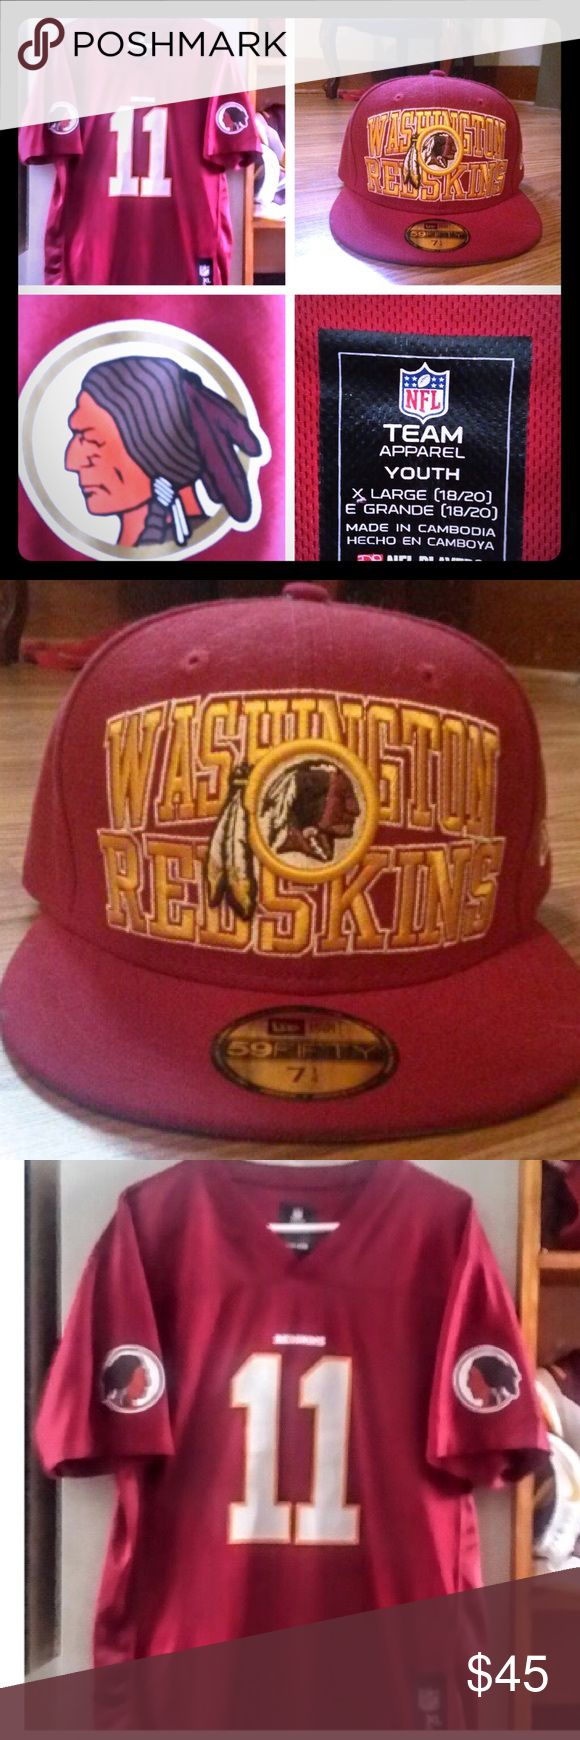 WORN ONCE/WASHINGTON INDIANS HAT AND JERSEY GREAT CONDITION NFL Matching Sets